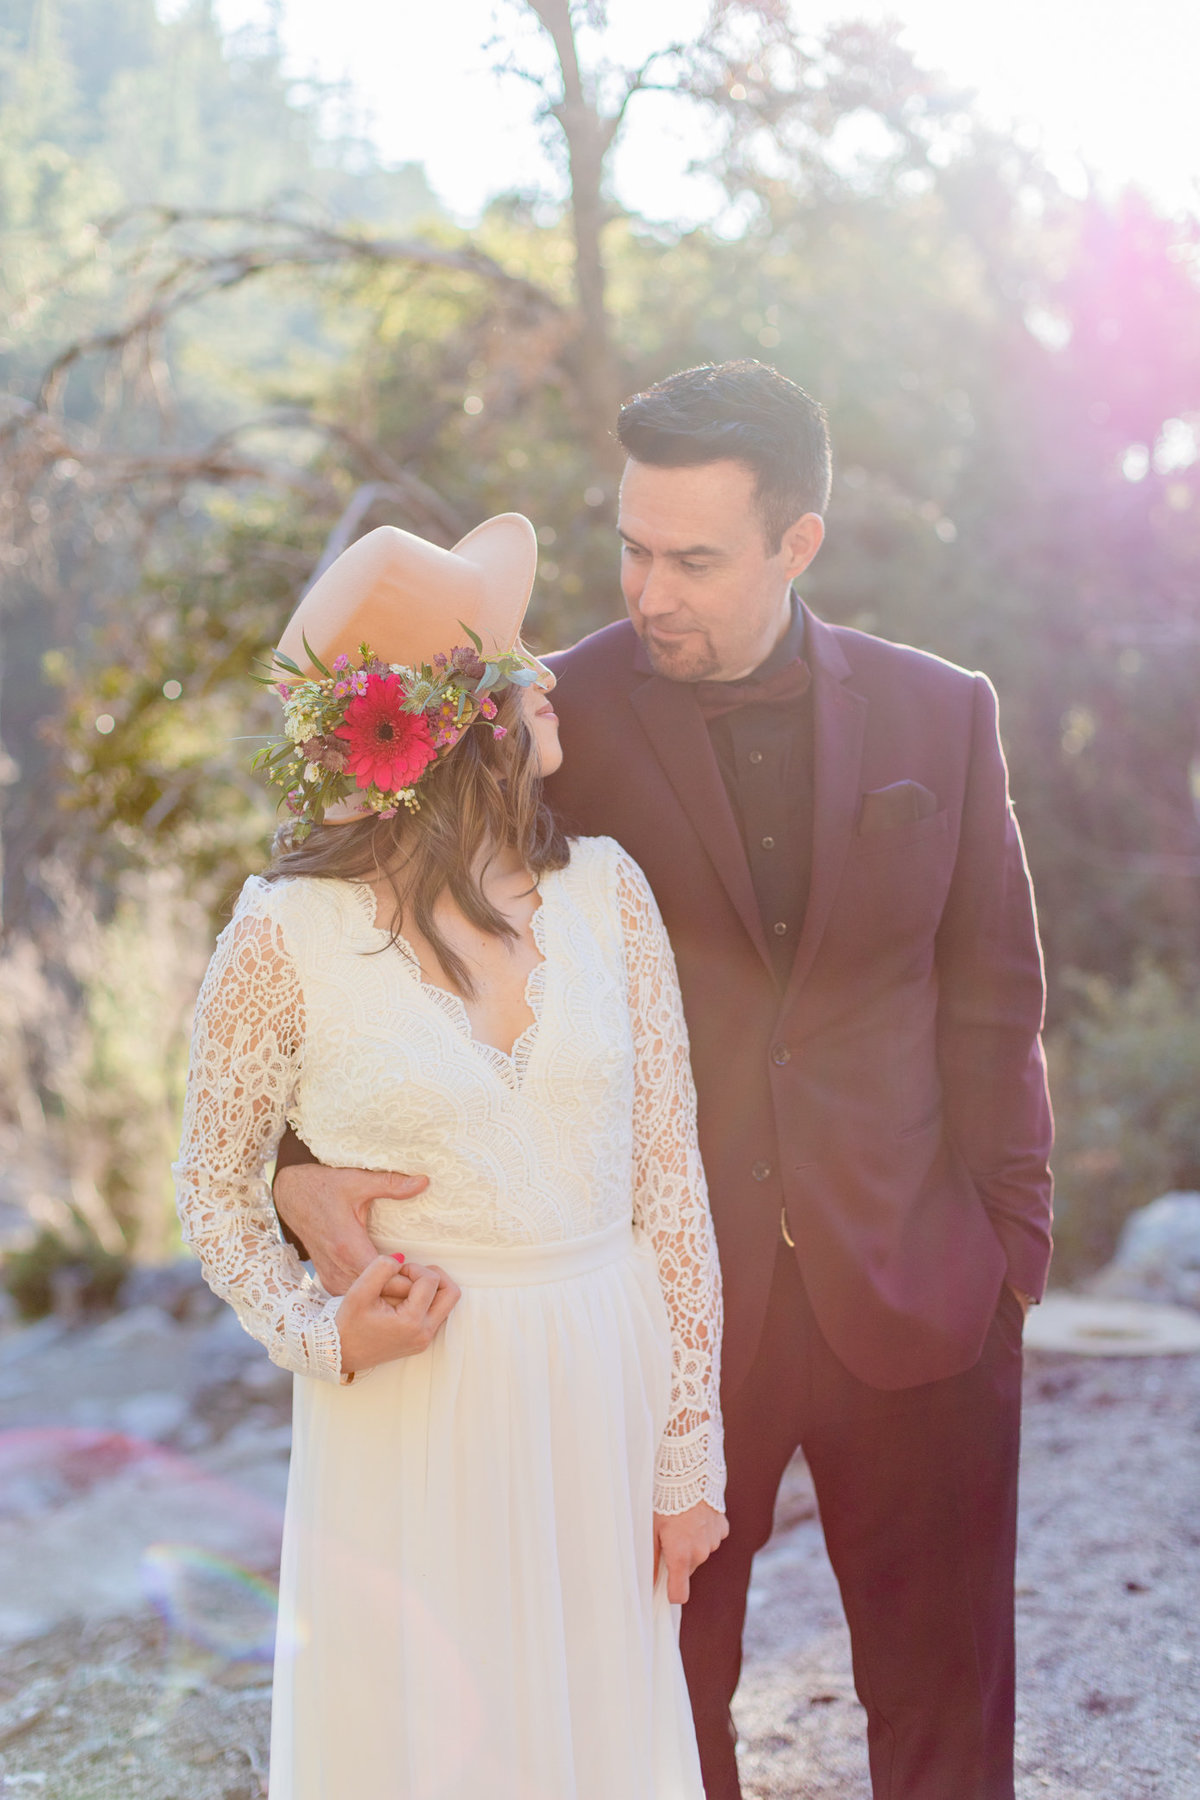 Mt. Baldy Elopement, Mt. Baldy Styled Shoot, Mt. Baldy Wedding, Forest Elopement, Forest Wedding, Boho Wedding, Boho Elopement, Mt. Baldy Boho, Forest Boho, Woodland Boho-22